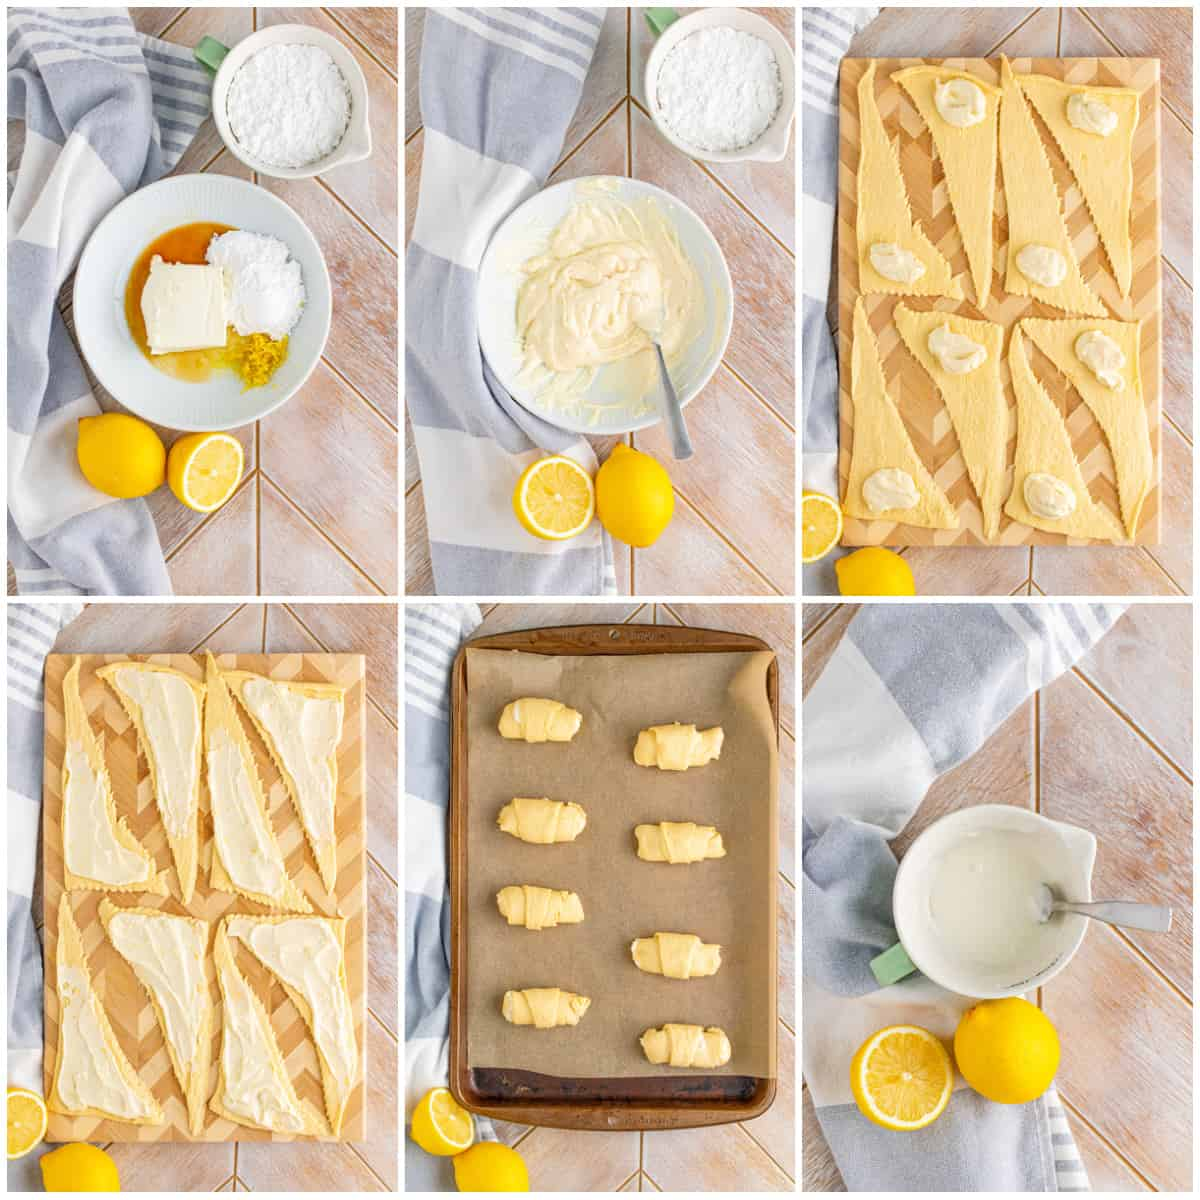 Step by step photos on how to make Cheesecake Crescent Rolls